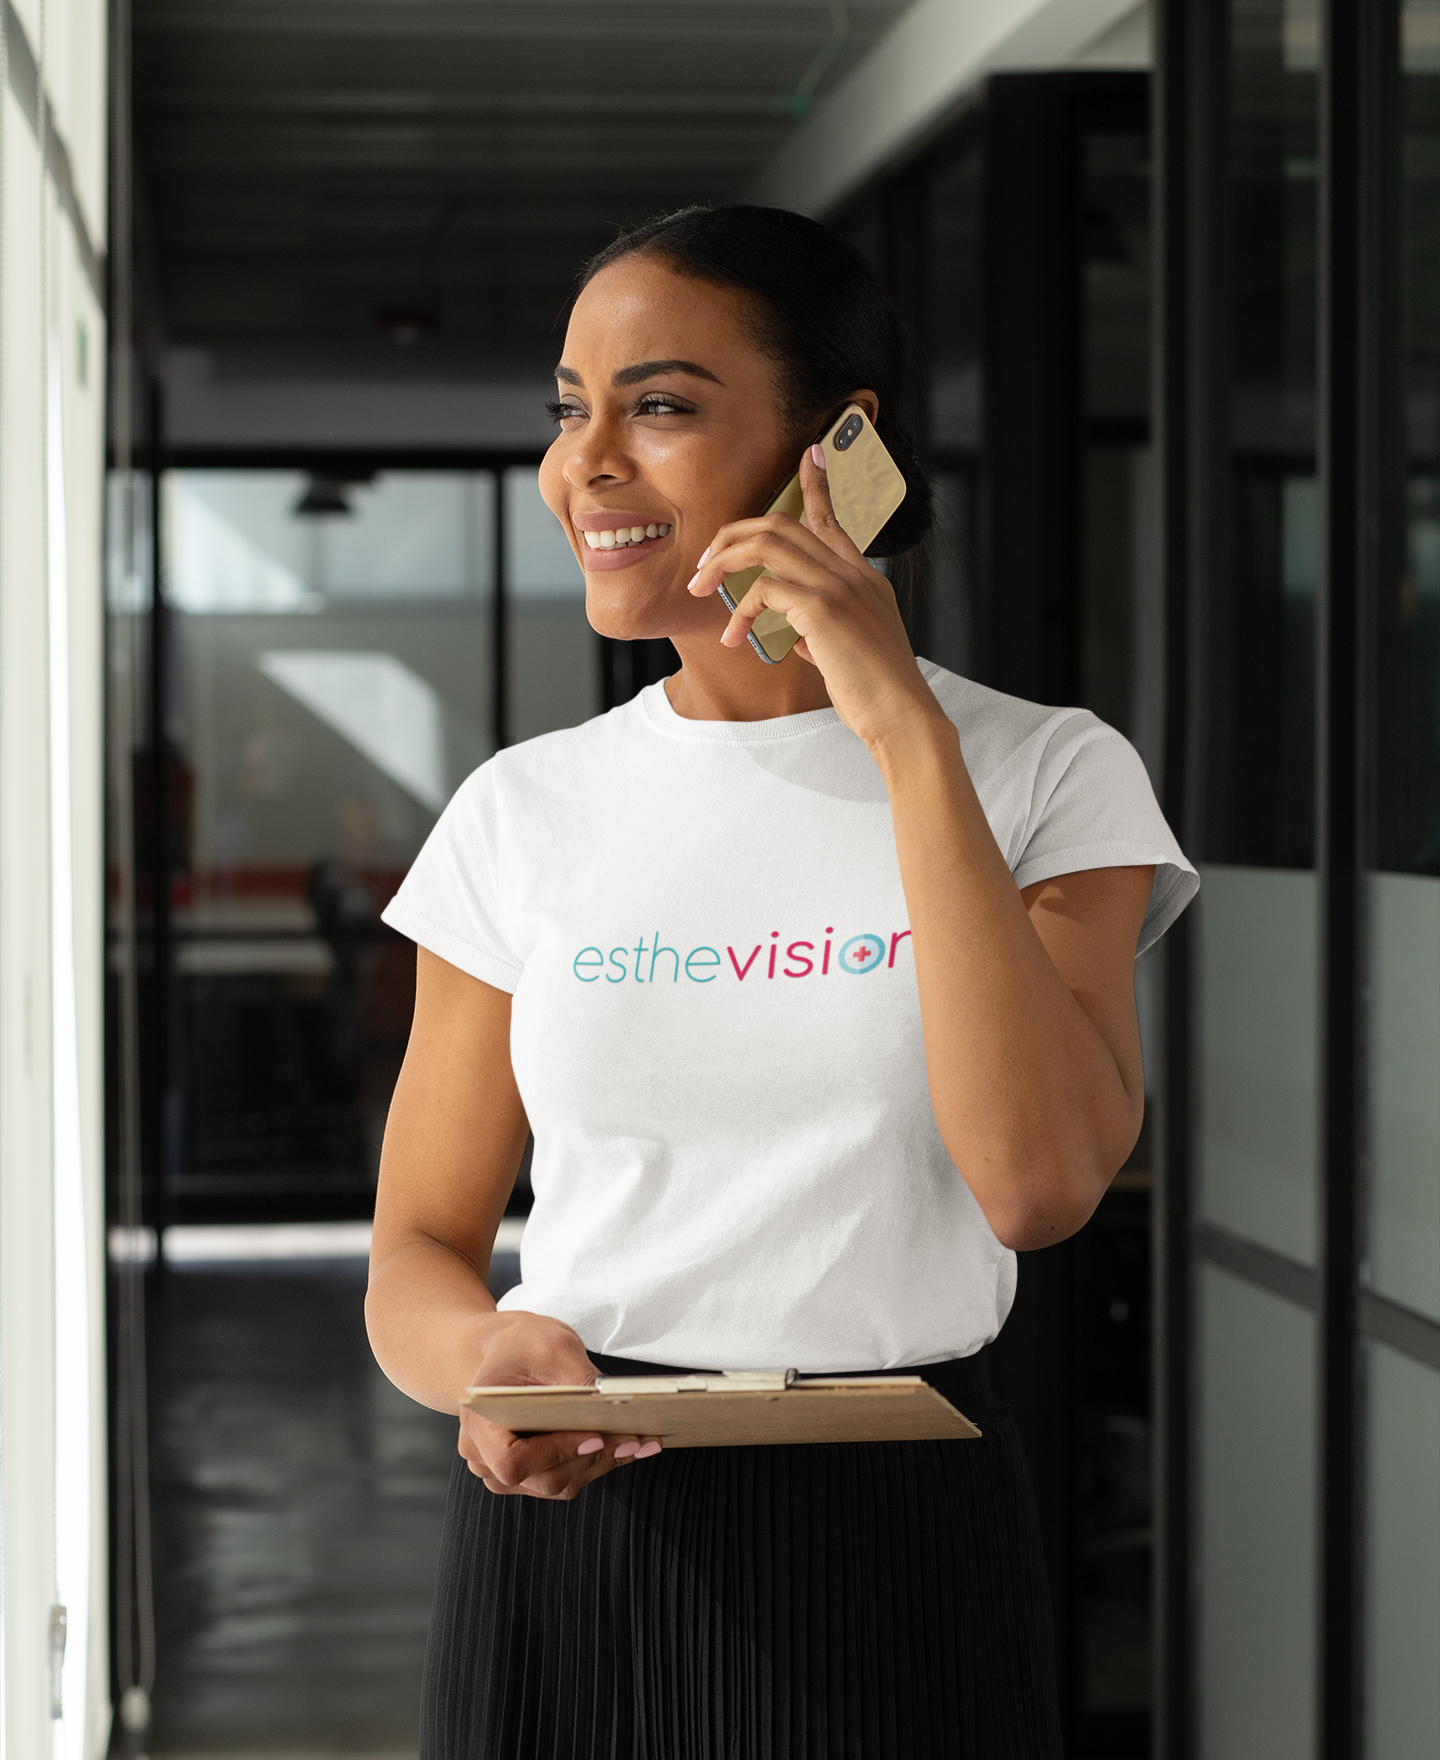 t-shirt-mockup-of-a-woman-speaking-on-the-phone-at-an-office-hallway-31700-(1)